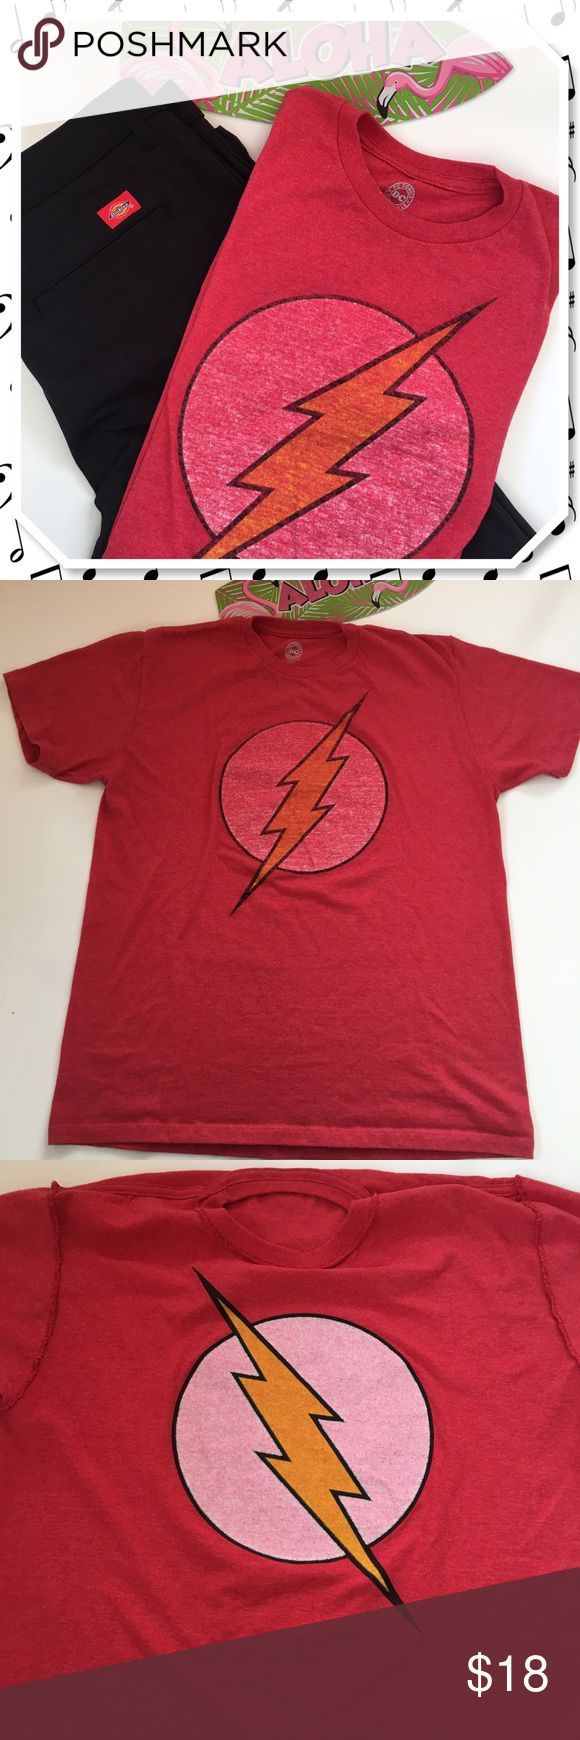 ⚡The Flash Comic Graphic Tee⚡ Bazinga! Who doesn't love Sheldon in the Big Bang Theory? Well, rock his comic book nerd style in this The Flash graphic tee. Iron on print in was done intentionally on the inside of the shirt so when worn it gives it a retro fade look. EUC only worn a few times. Hubs started to downsize his closet so keep your eyes open for more men's wears size Large and size 36/31 (ish) ❌womens Dickeys pants sold separately   ❌ trades ❌ lowballs 👍offer button  🌟Bundle 2 or…